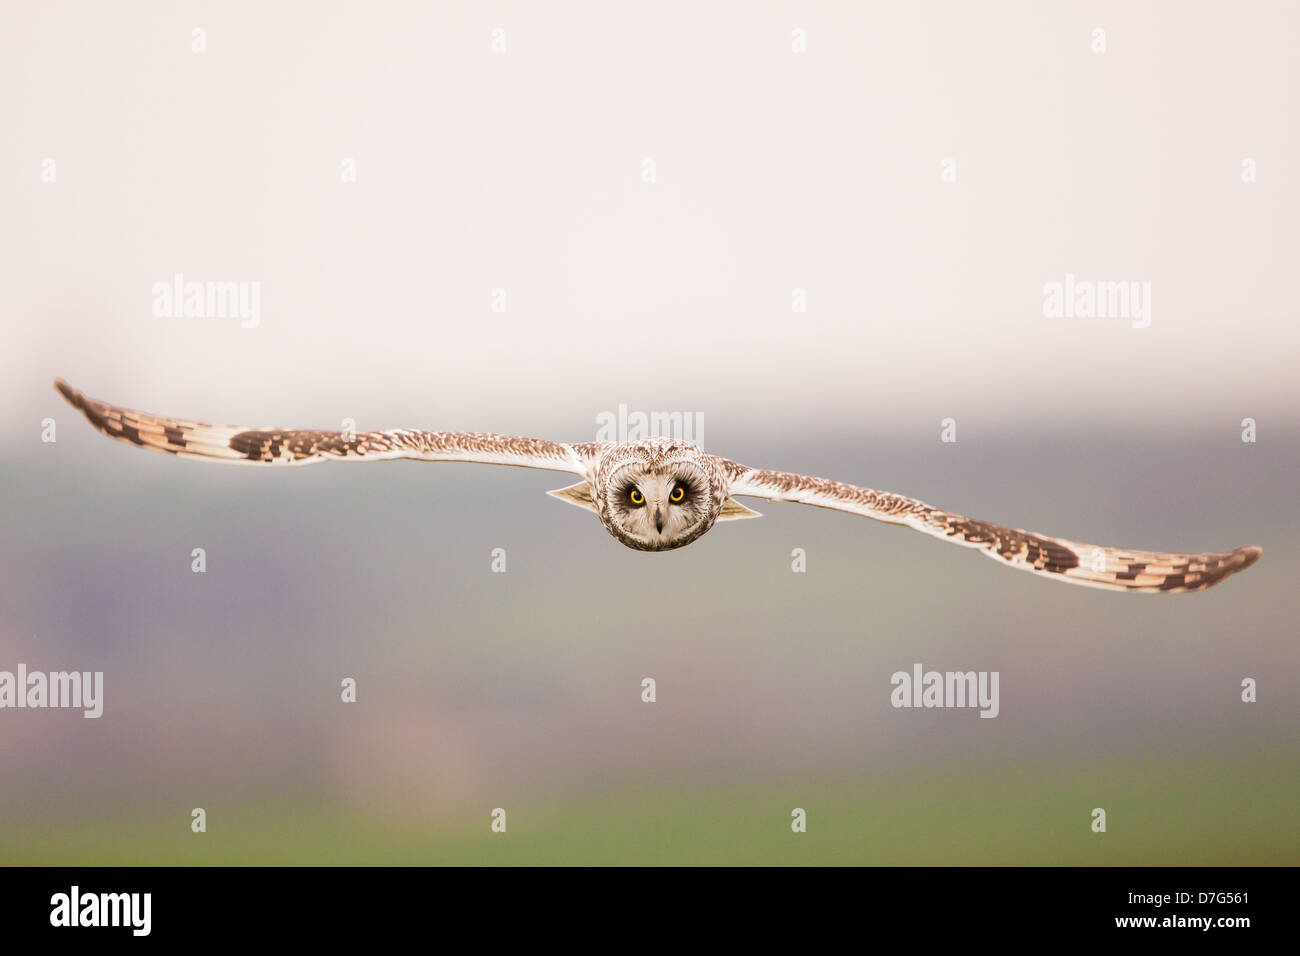 A short-eared owl (Asio flammeus) in flight, hunting over farmland - Stock Image